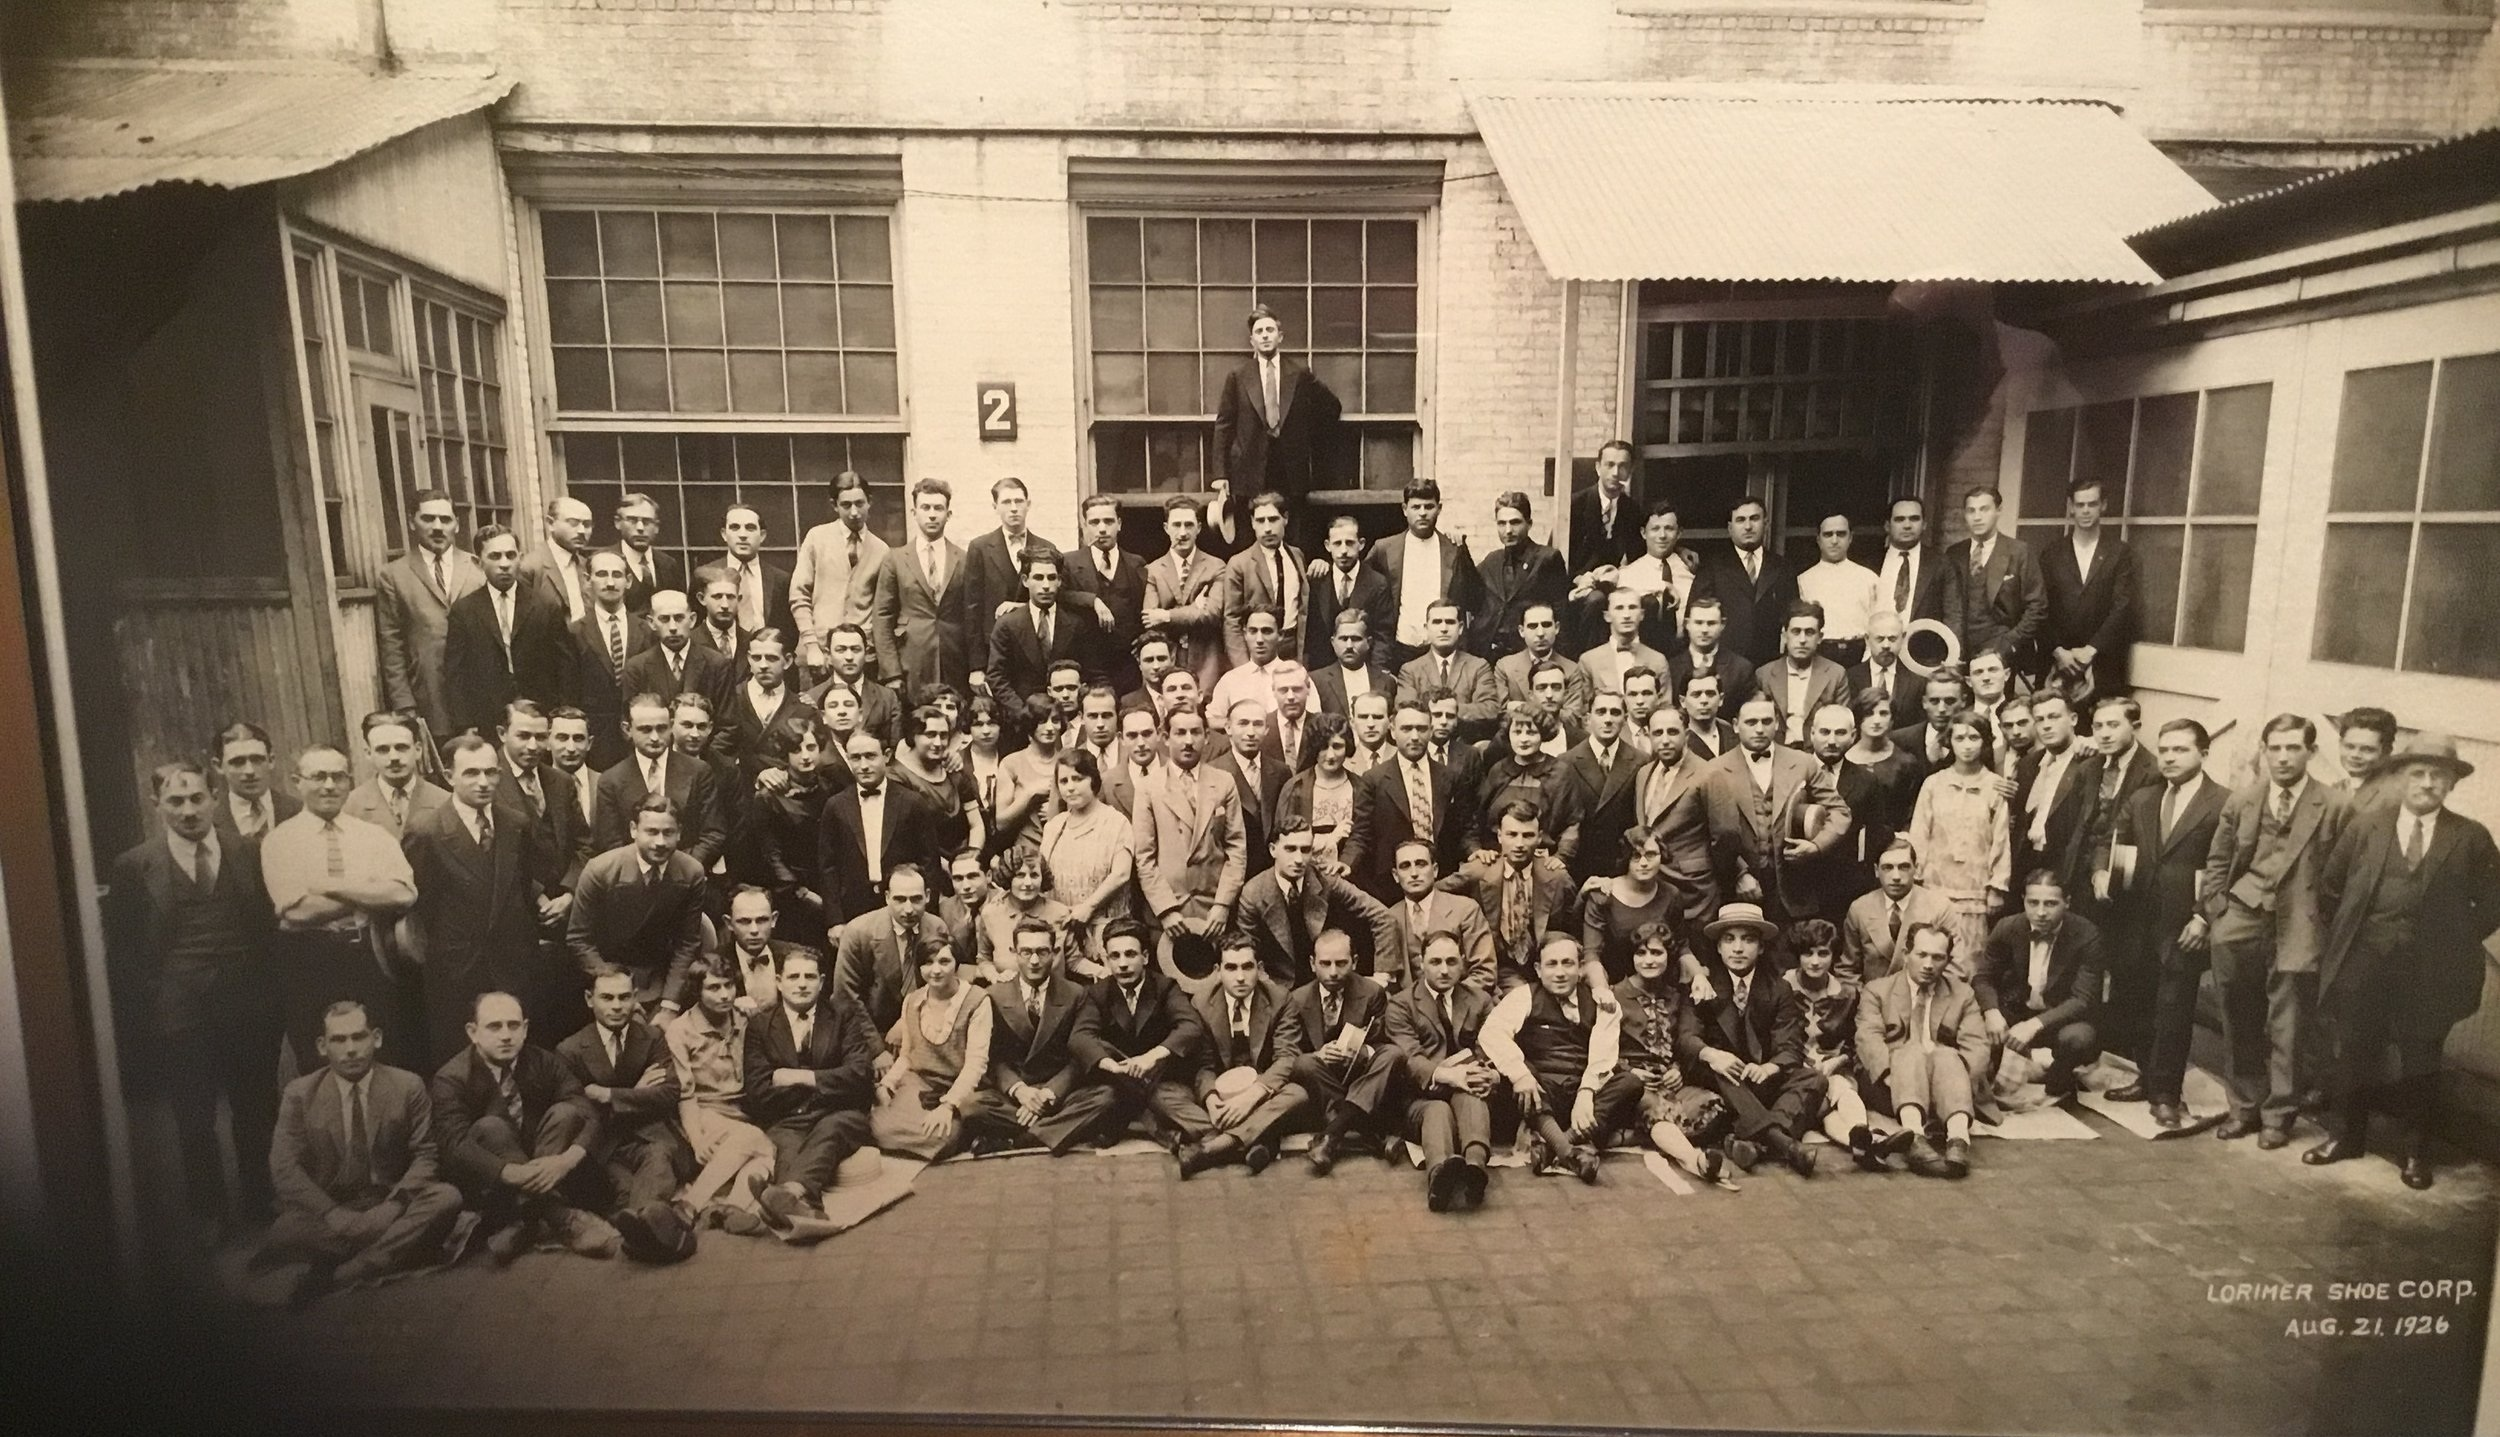 Sol & George and their employees at Lorimer Shoe Factory, August 1926